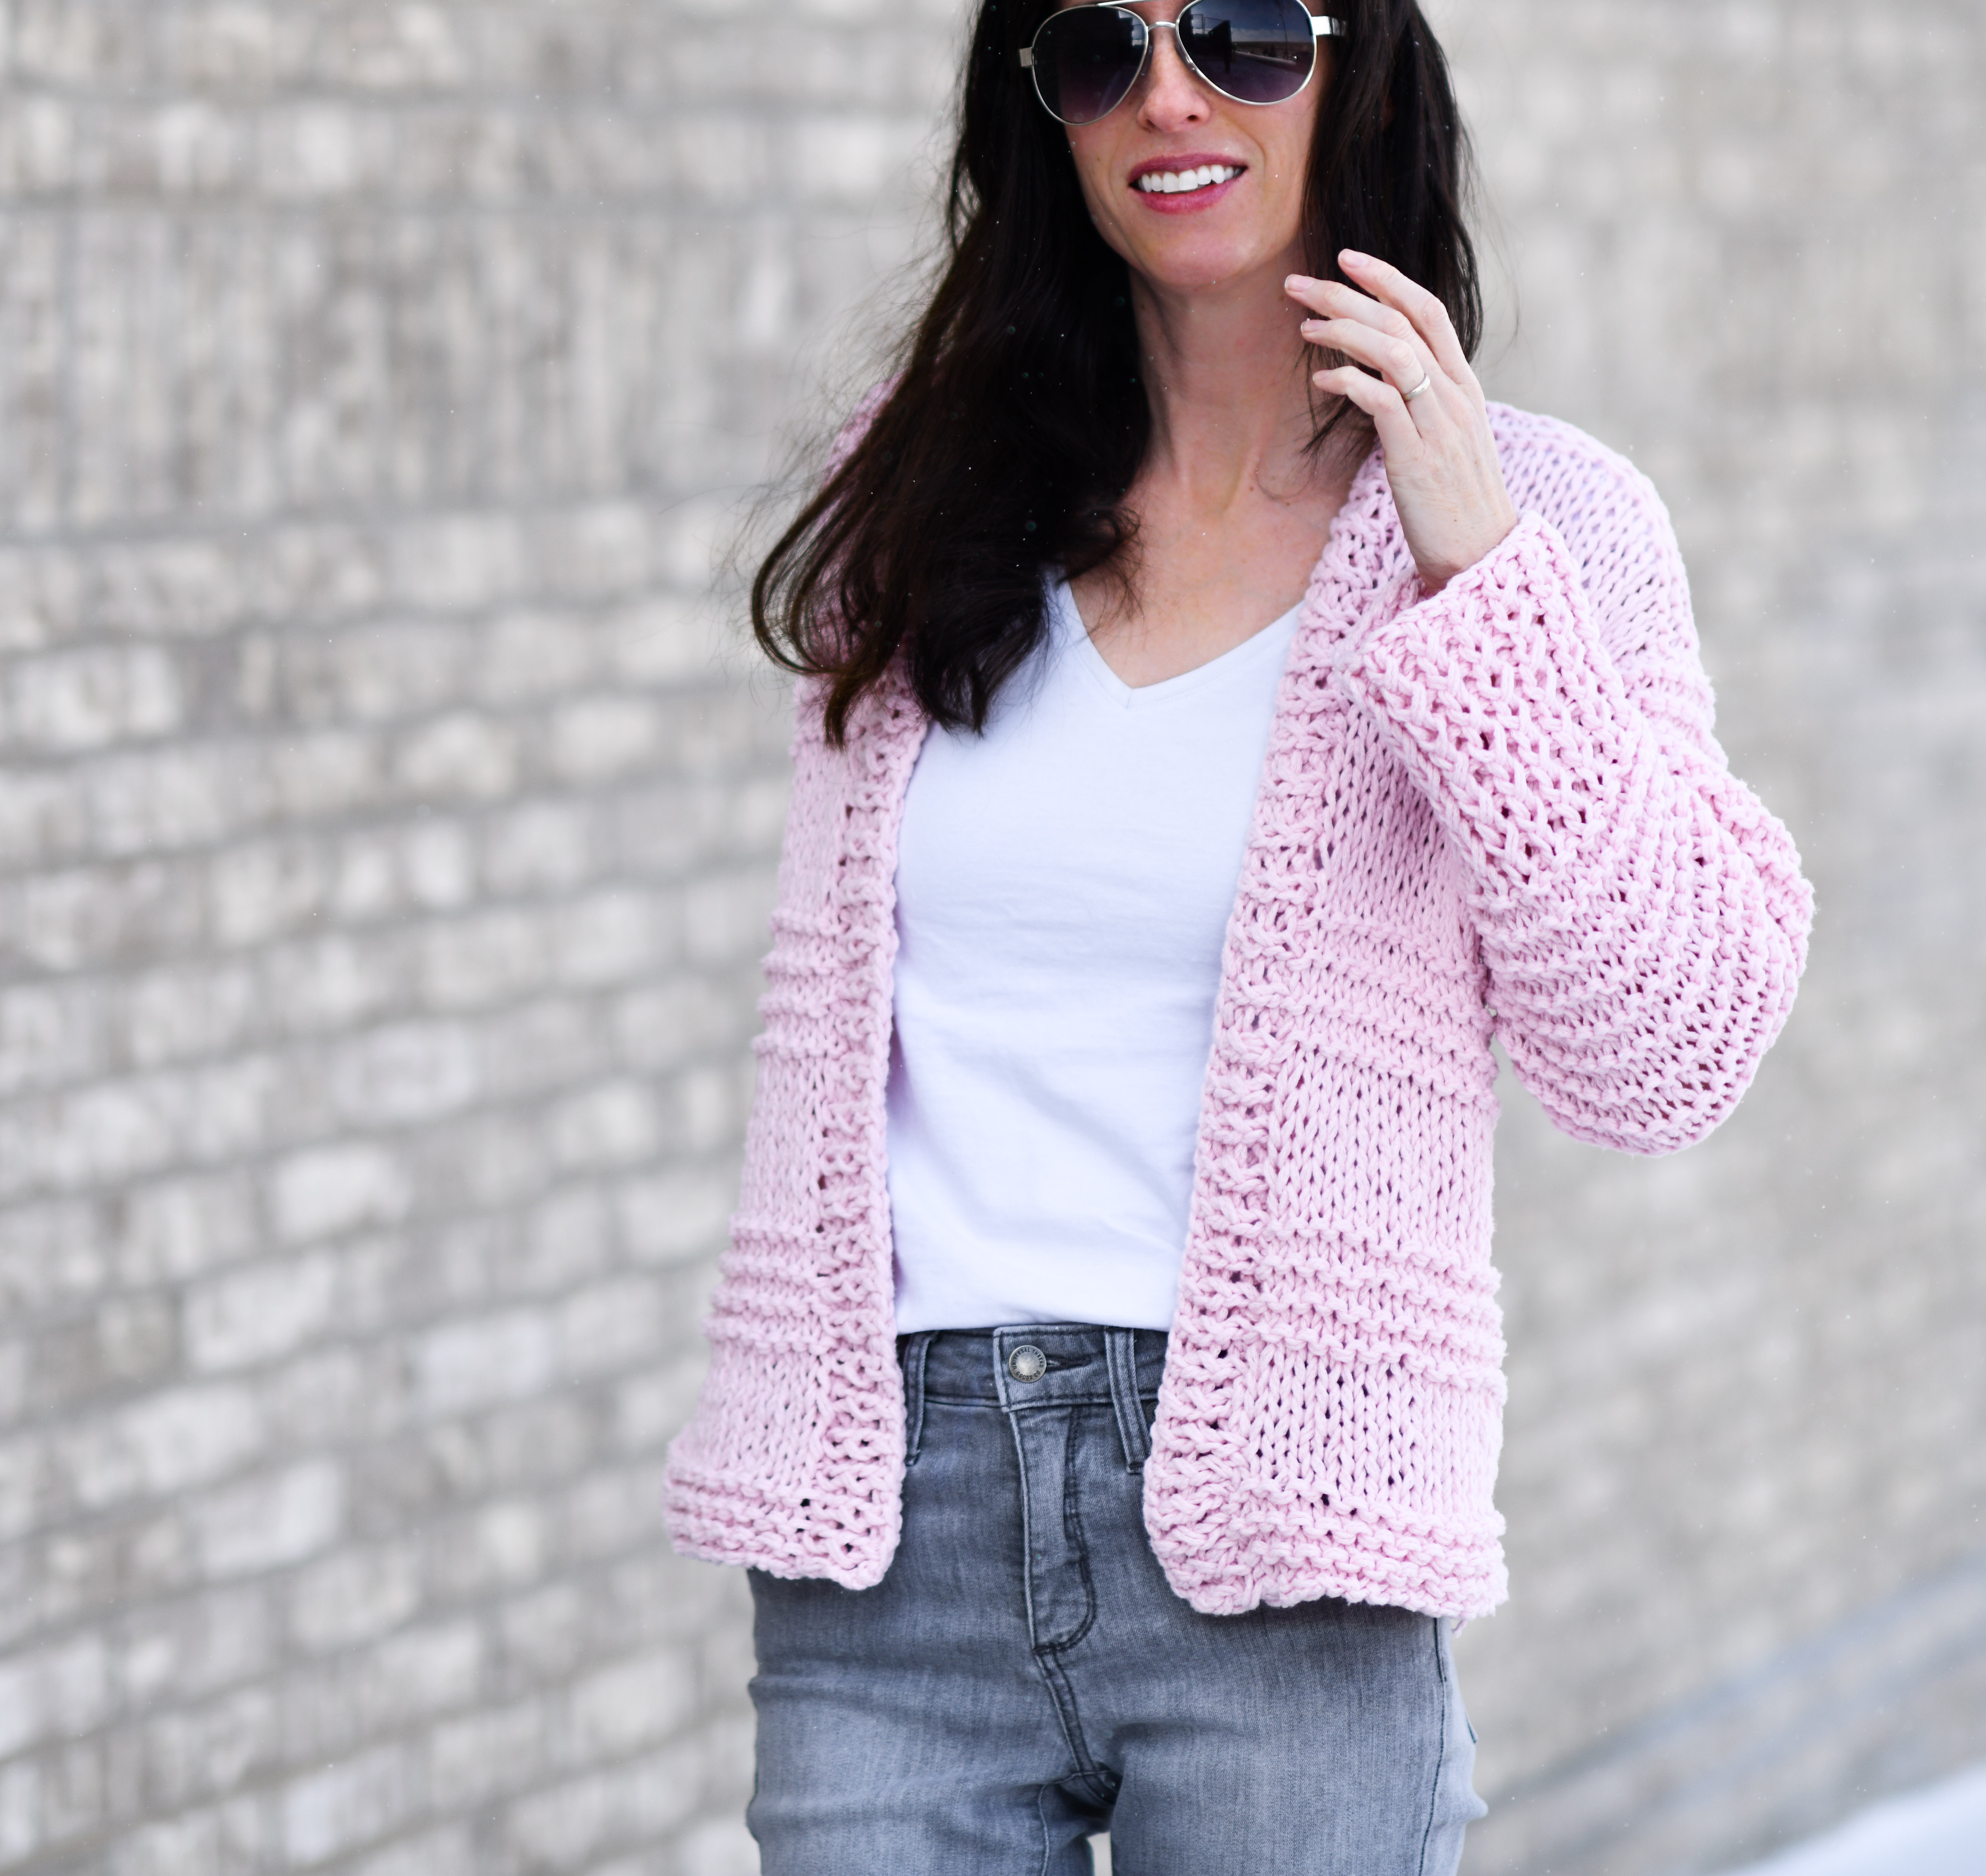 Simple Knit Sweater Pattern Free Cotton Candy Easy Knit Cardigan Pattern Mama In A Stitch